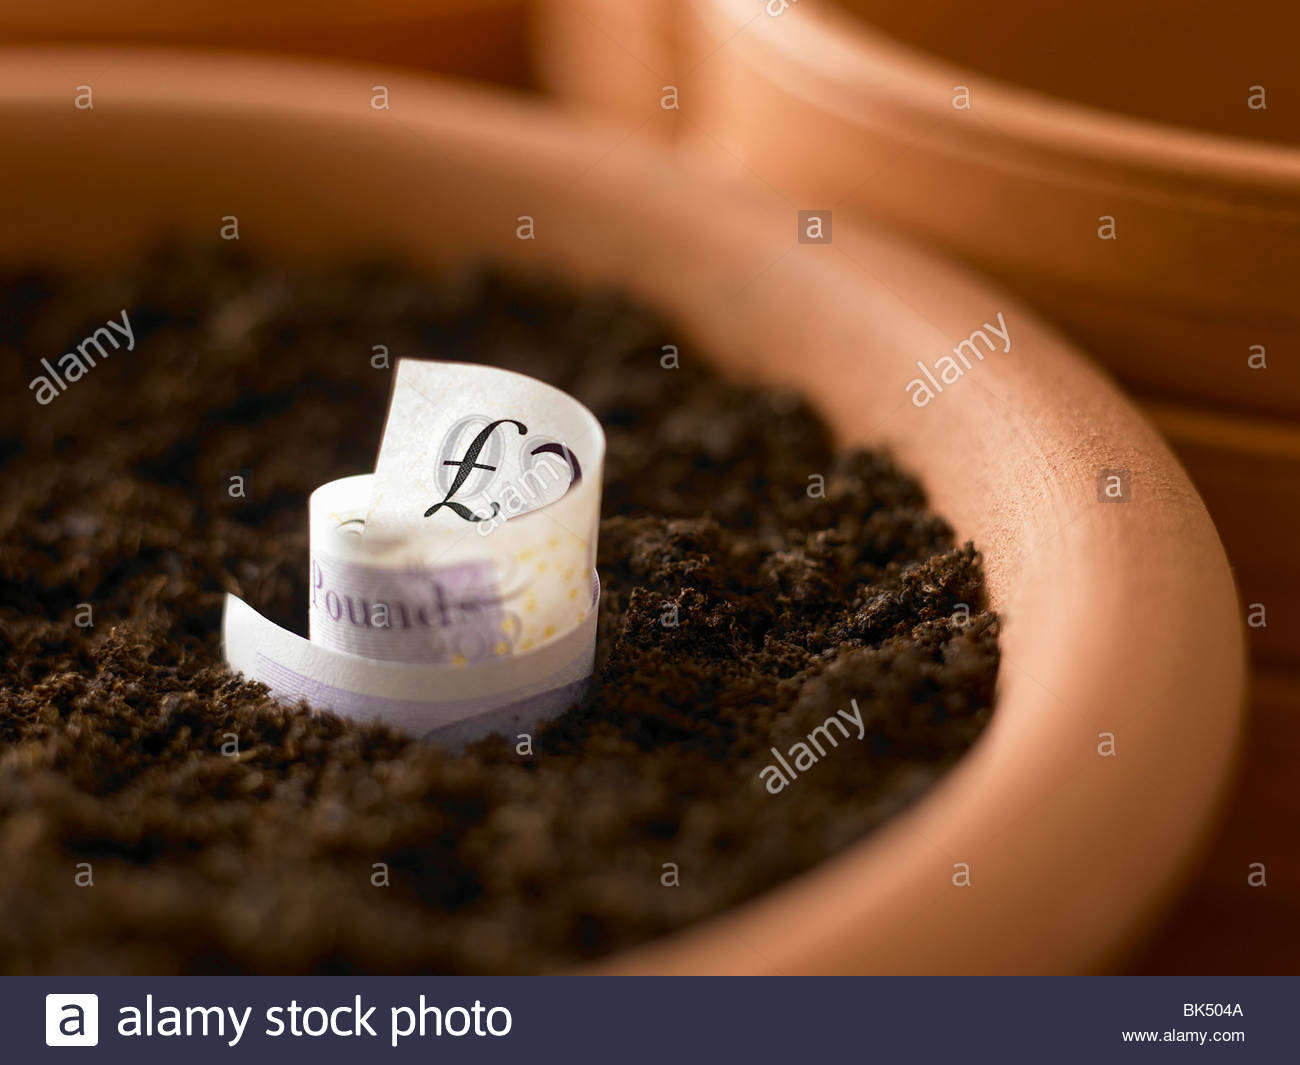 Roll of twenty pound notes growing in flowerpot - Stock Image